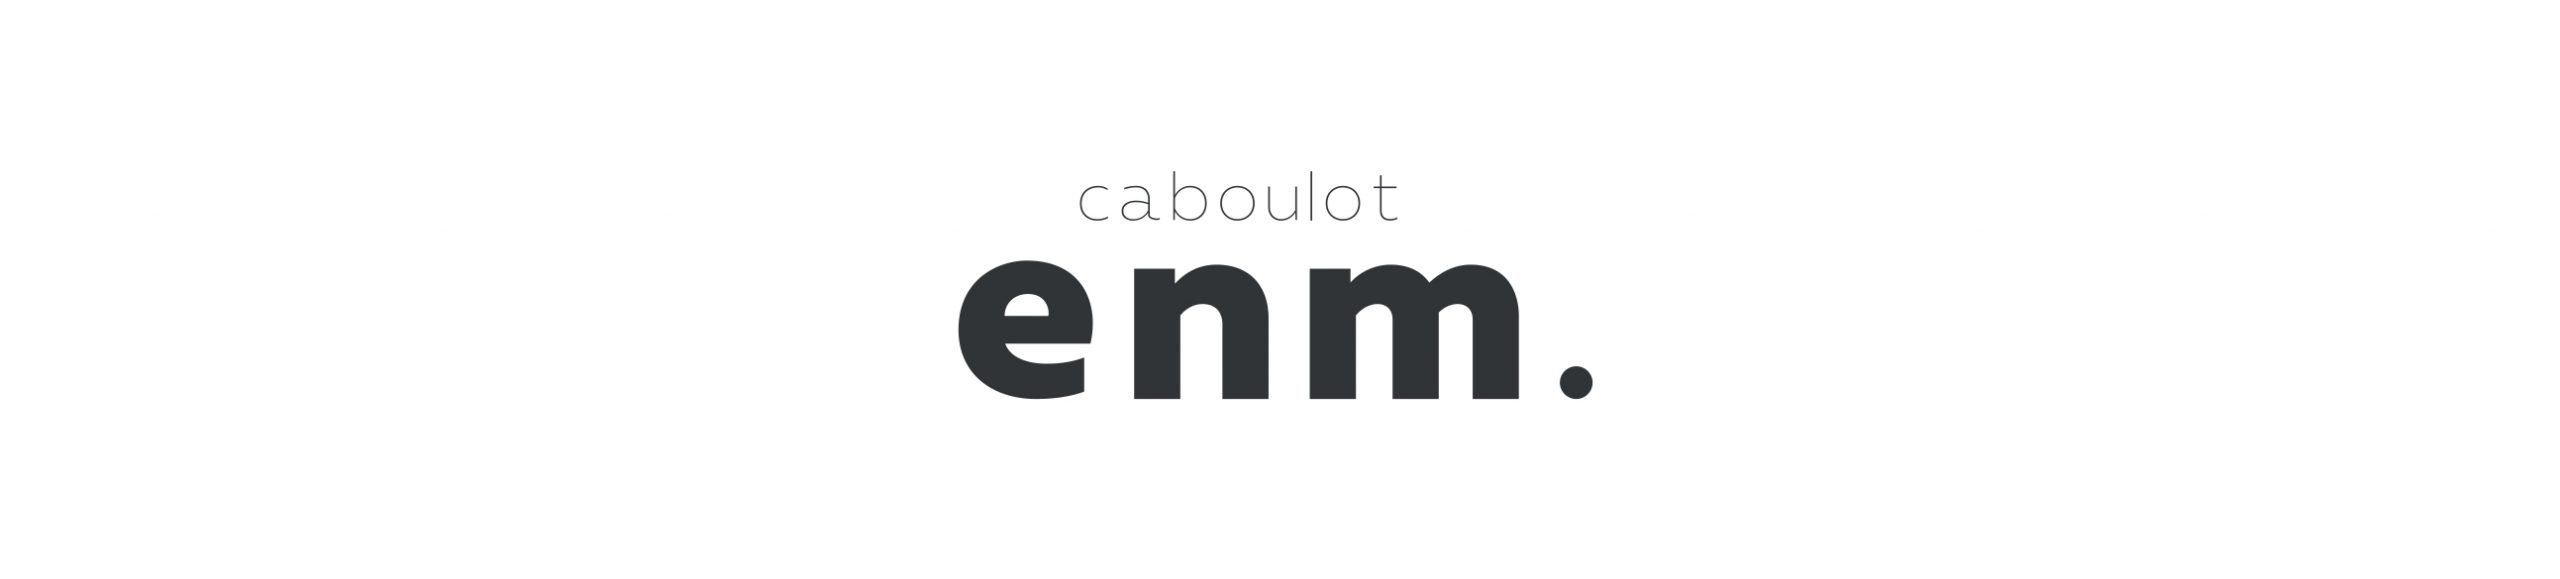 caboulot enm.|カブロエン